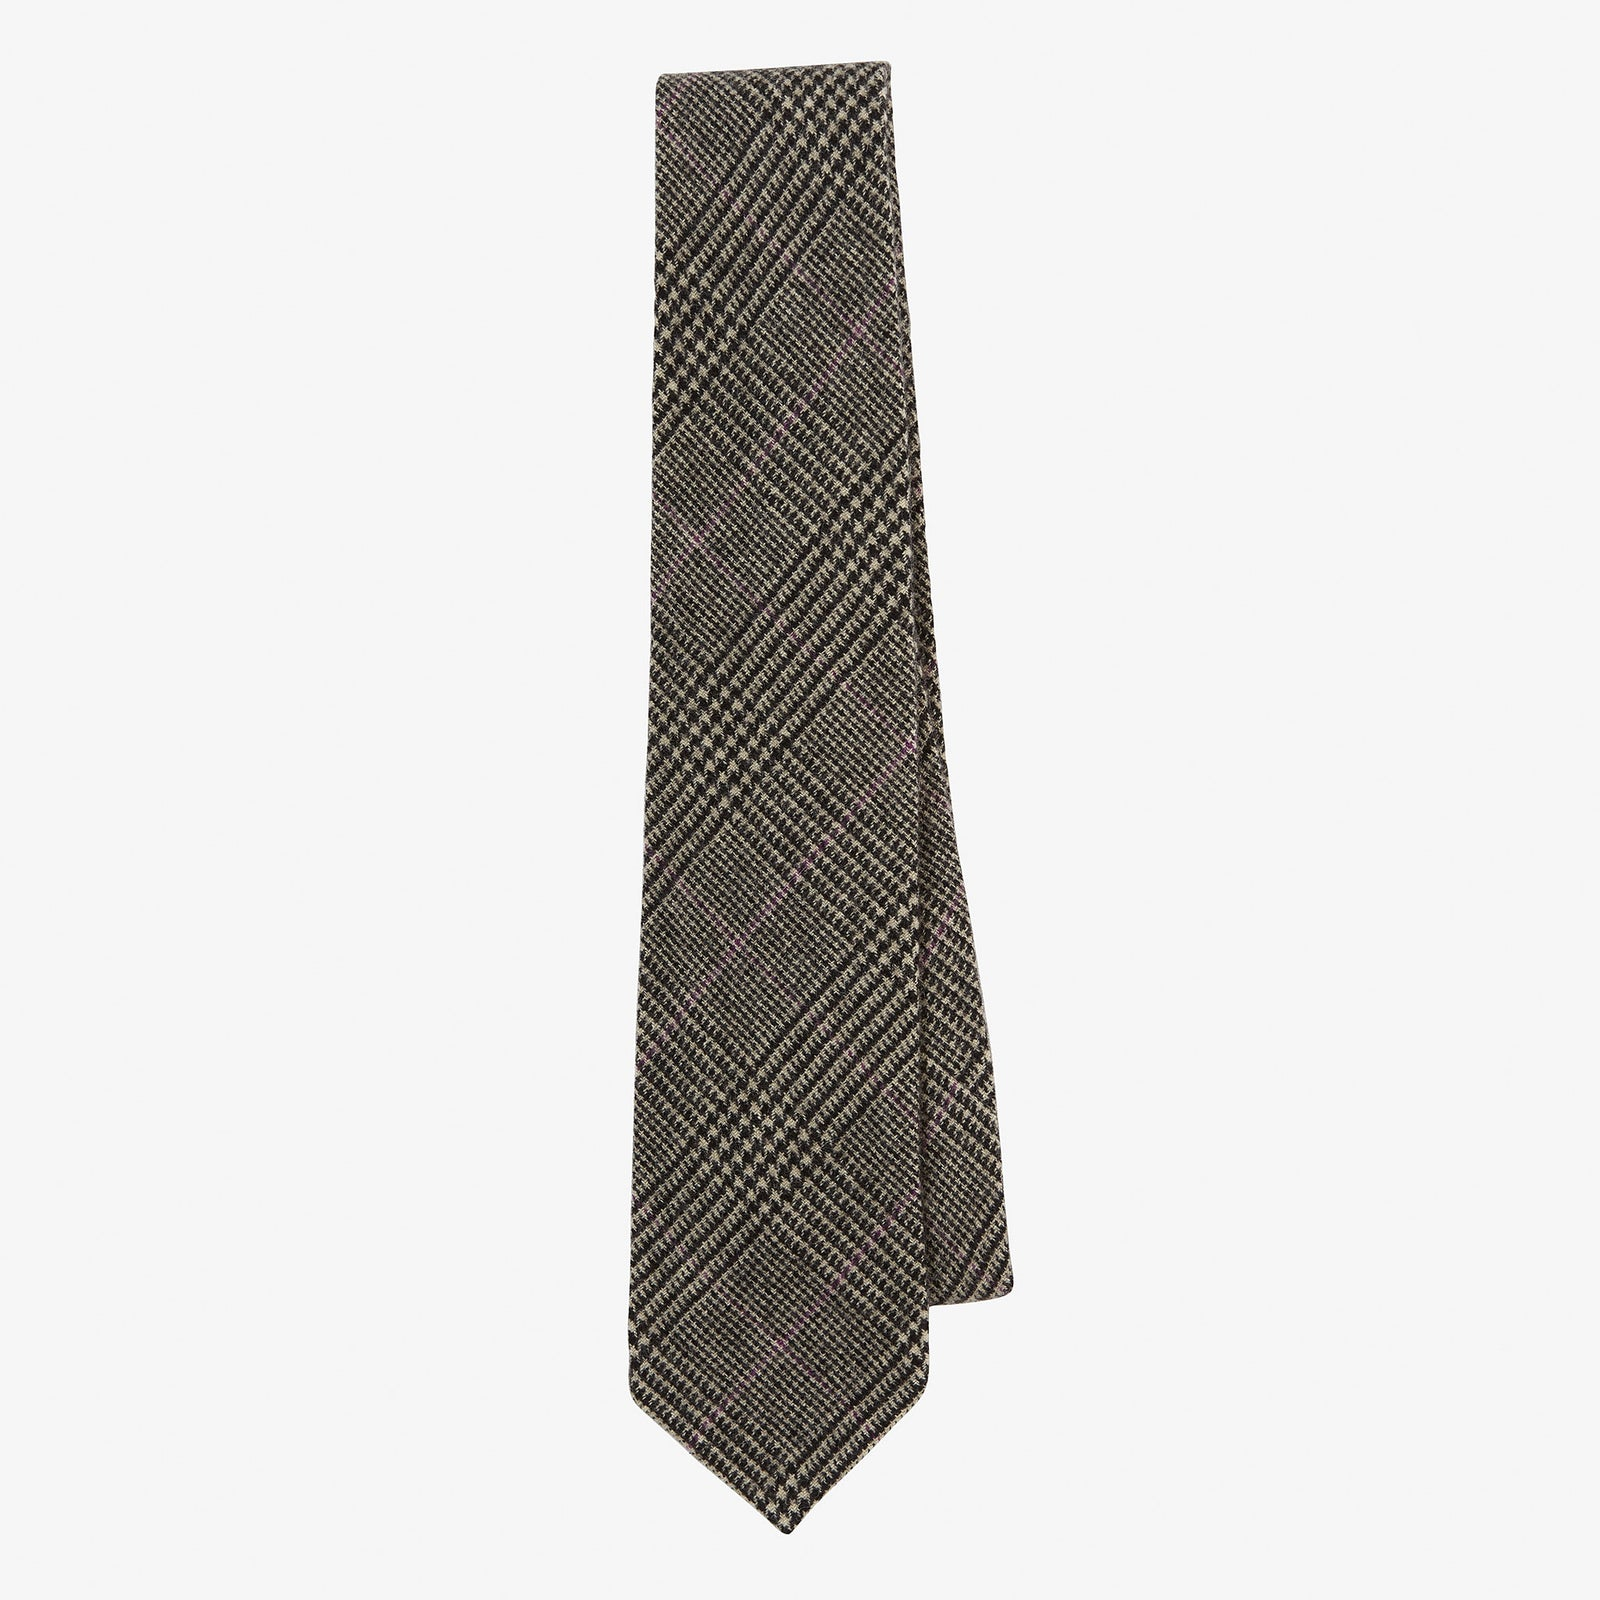 Cashmere Tie Glen Plaid Mauve Overcheck